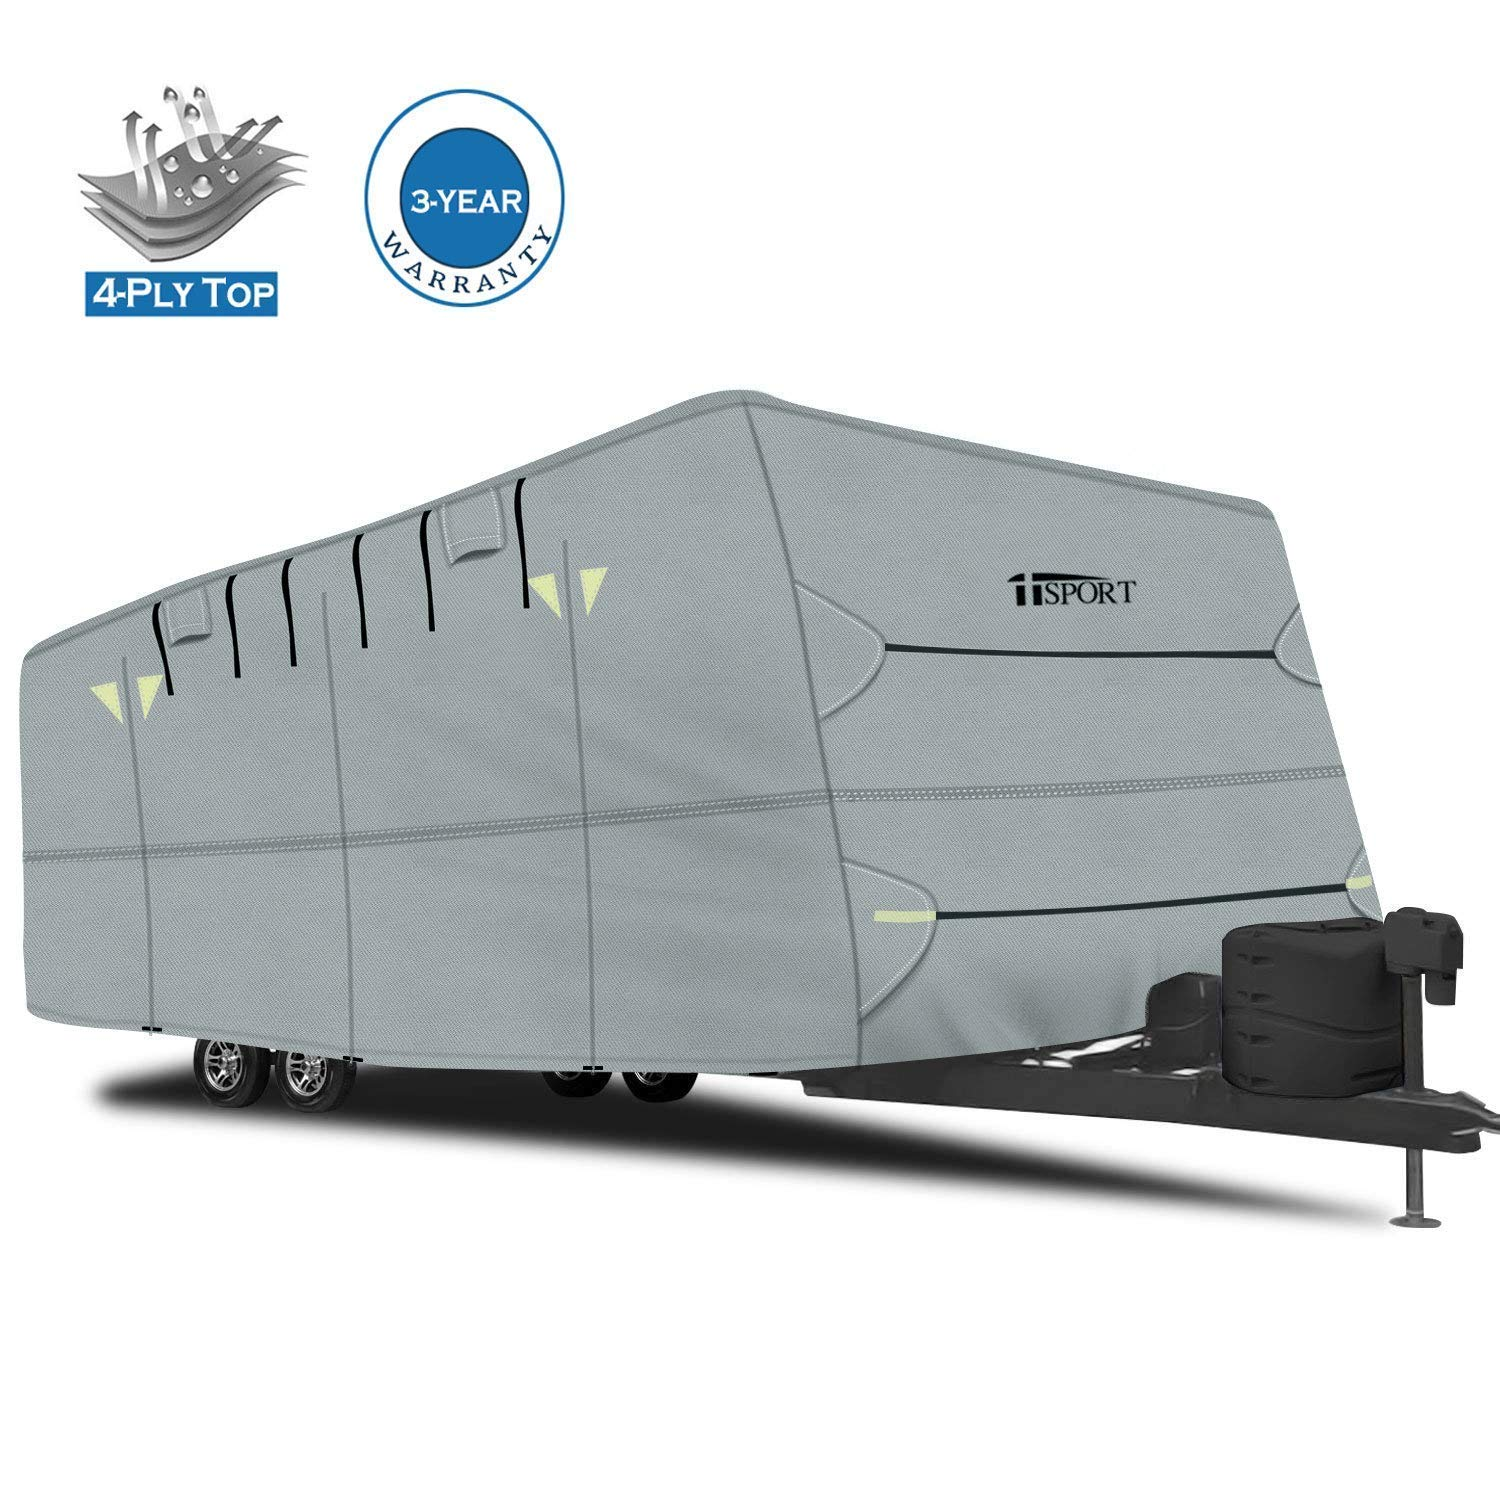 iiSPORT Extra Thick 4-Ply Top Panel Travel Trailer Cover, Fits 27'-30' Long Trailers - Ripstop Waterproof RVs Covers with Storage Bag, Snug-fit Elastic Hem & Windproof Buckles